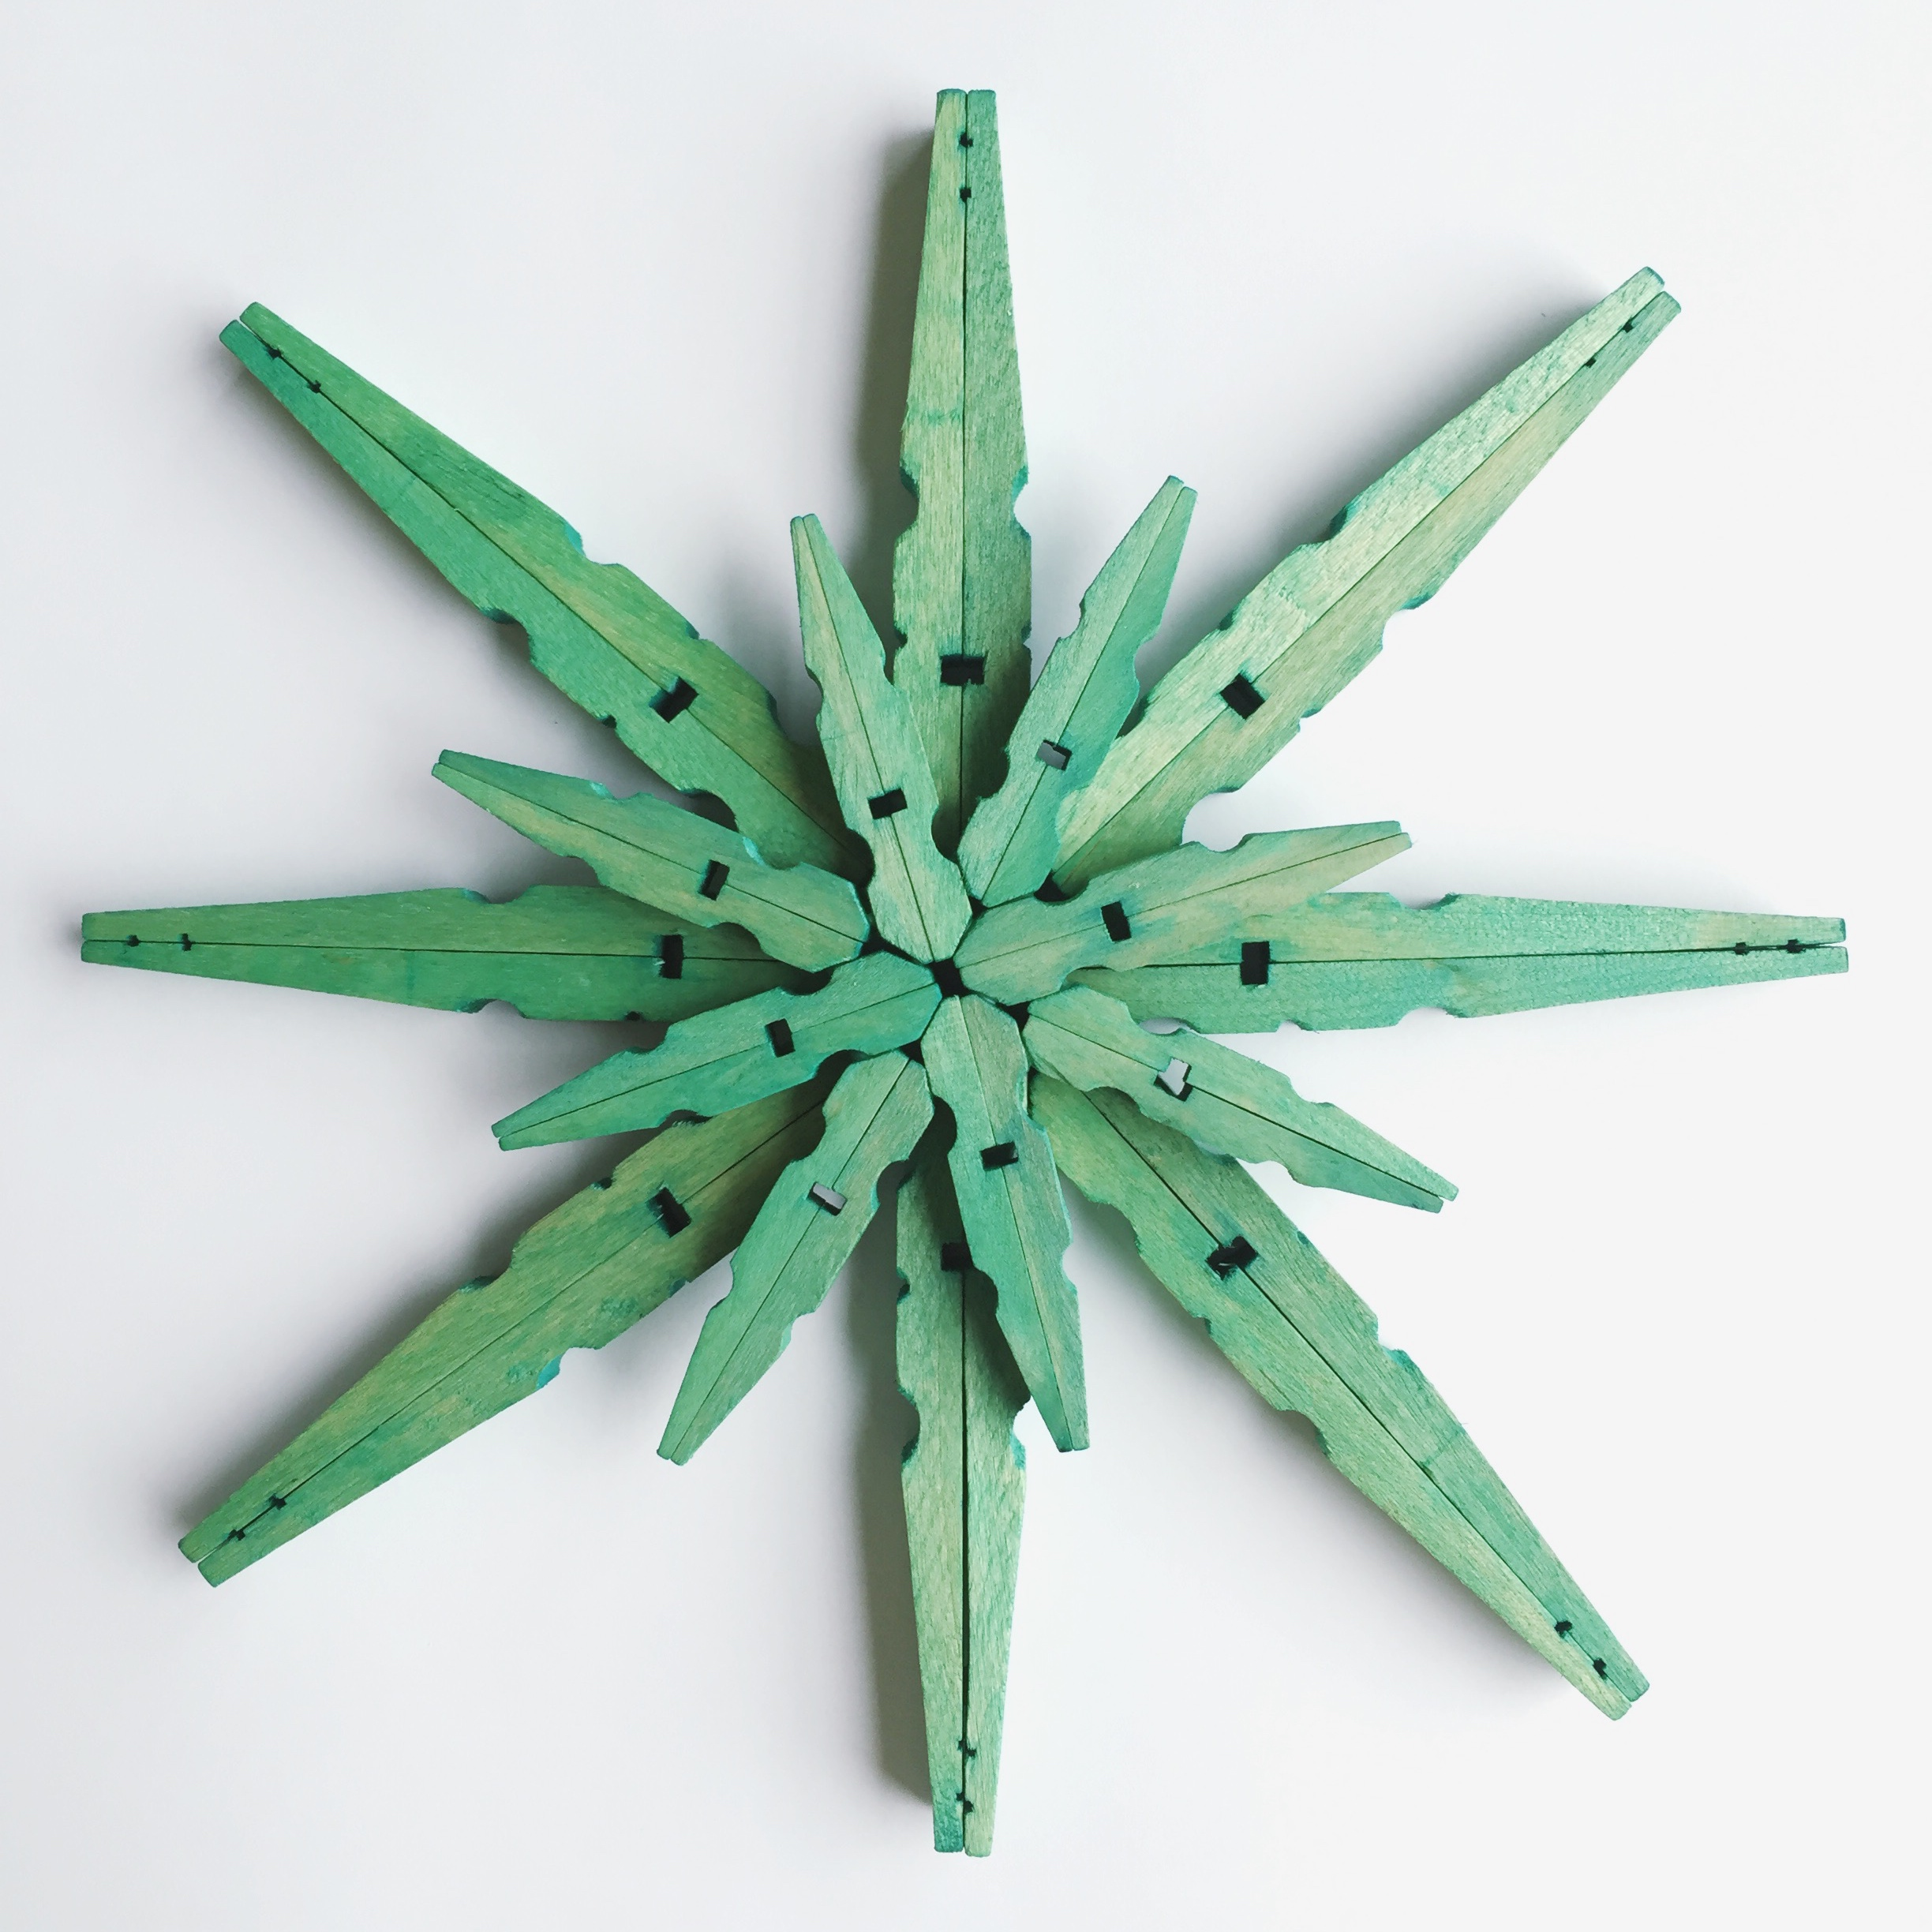 Diy clothespin crafts diy clothespin crafts pictures to pin on - Diy Dyed Clothespin Snowflake Christmas Ornaments